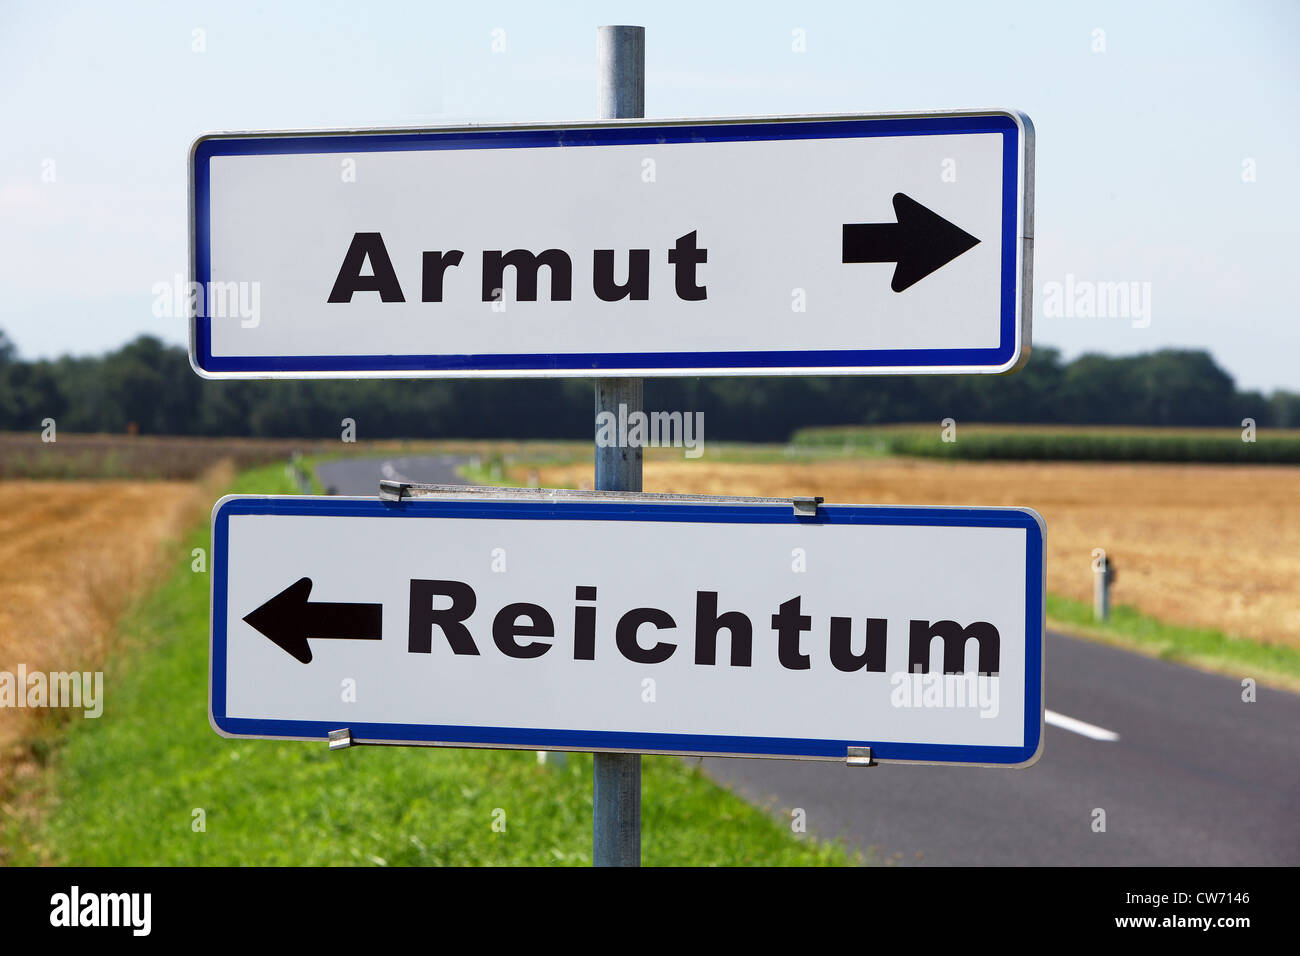 road sign Armut - Reichtum, poverty - richness - Stock Image